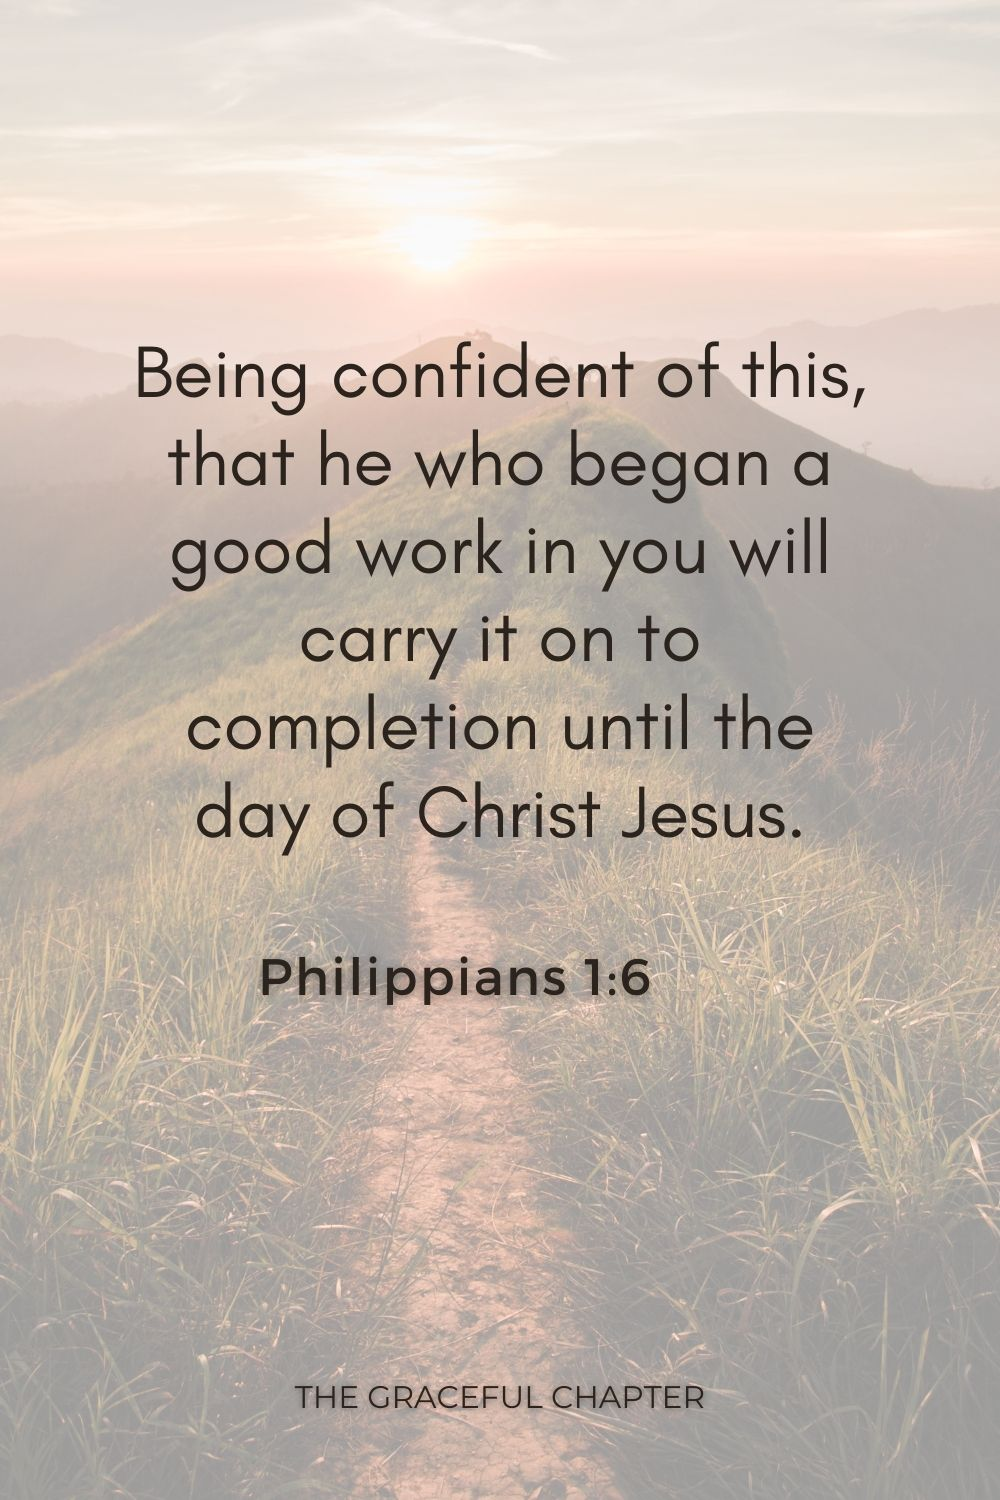 Being confident of this, that he who began a good work in you will carry it on to completion until the day of Christ Jesus. Philippians 1:6